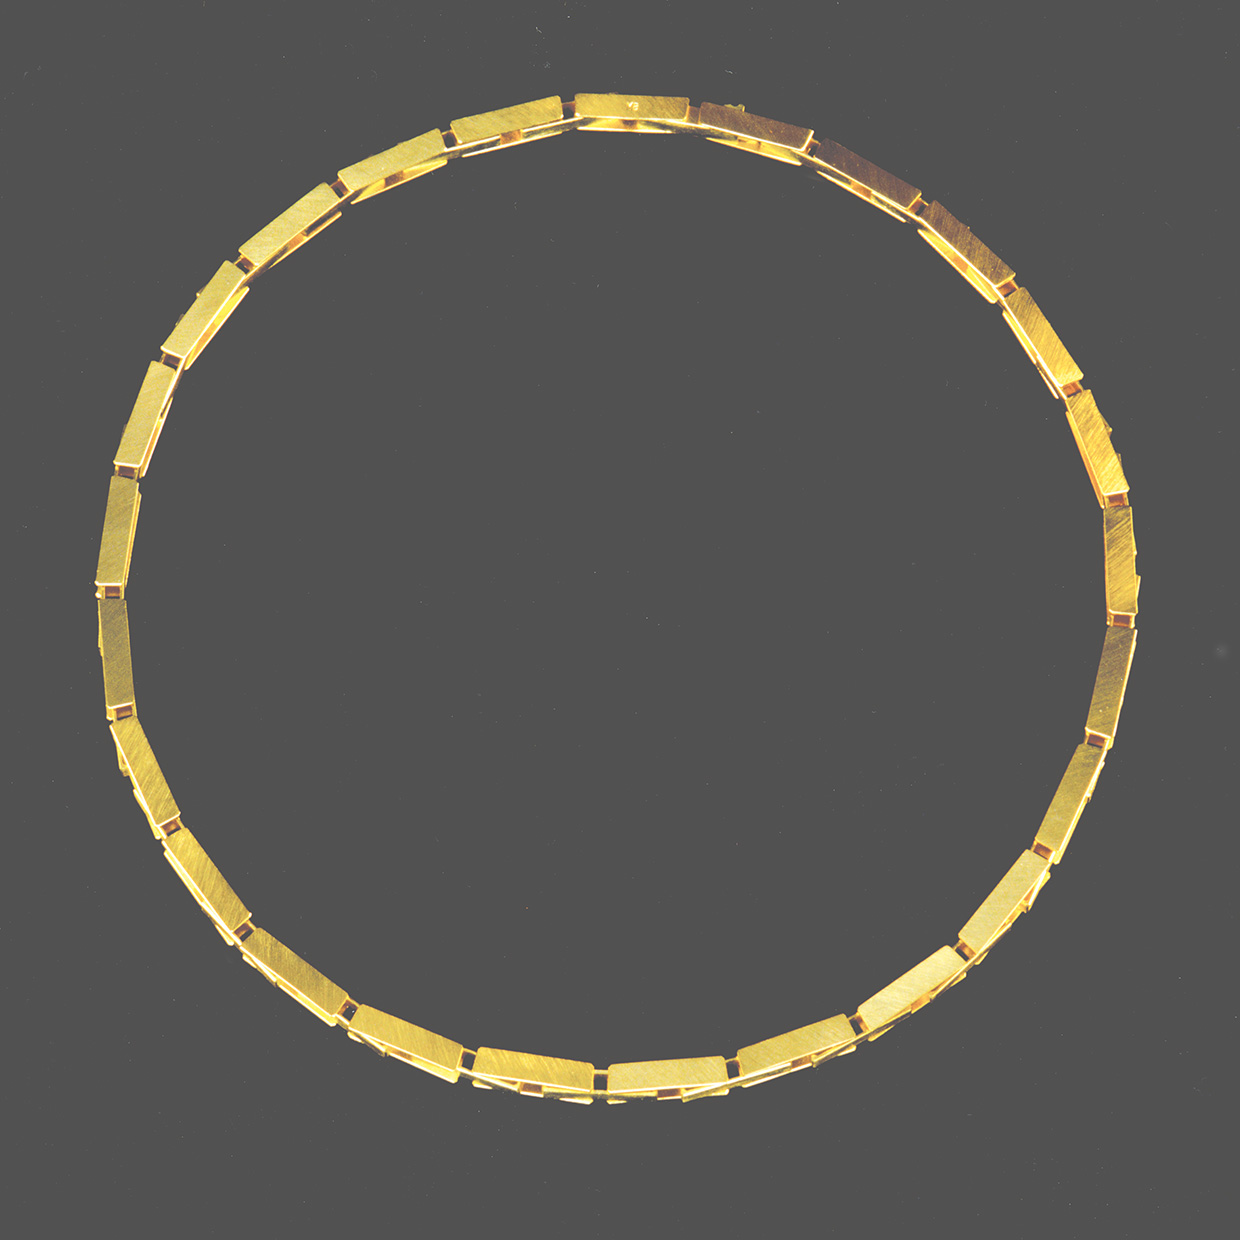 necklace  1991  gold  750  420x5  mm